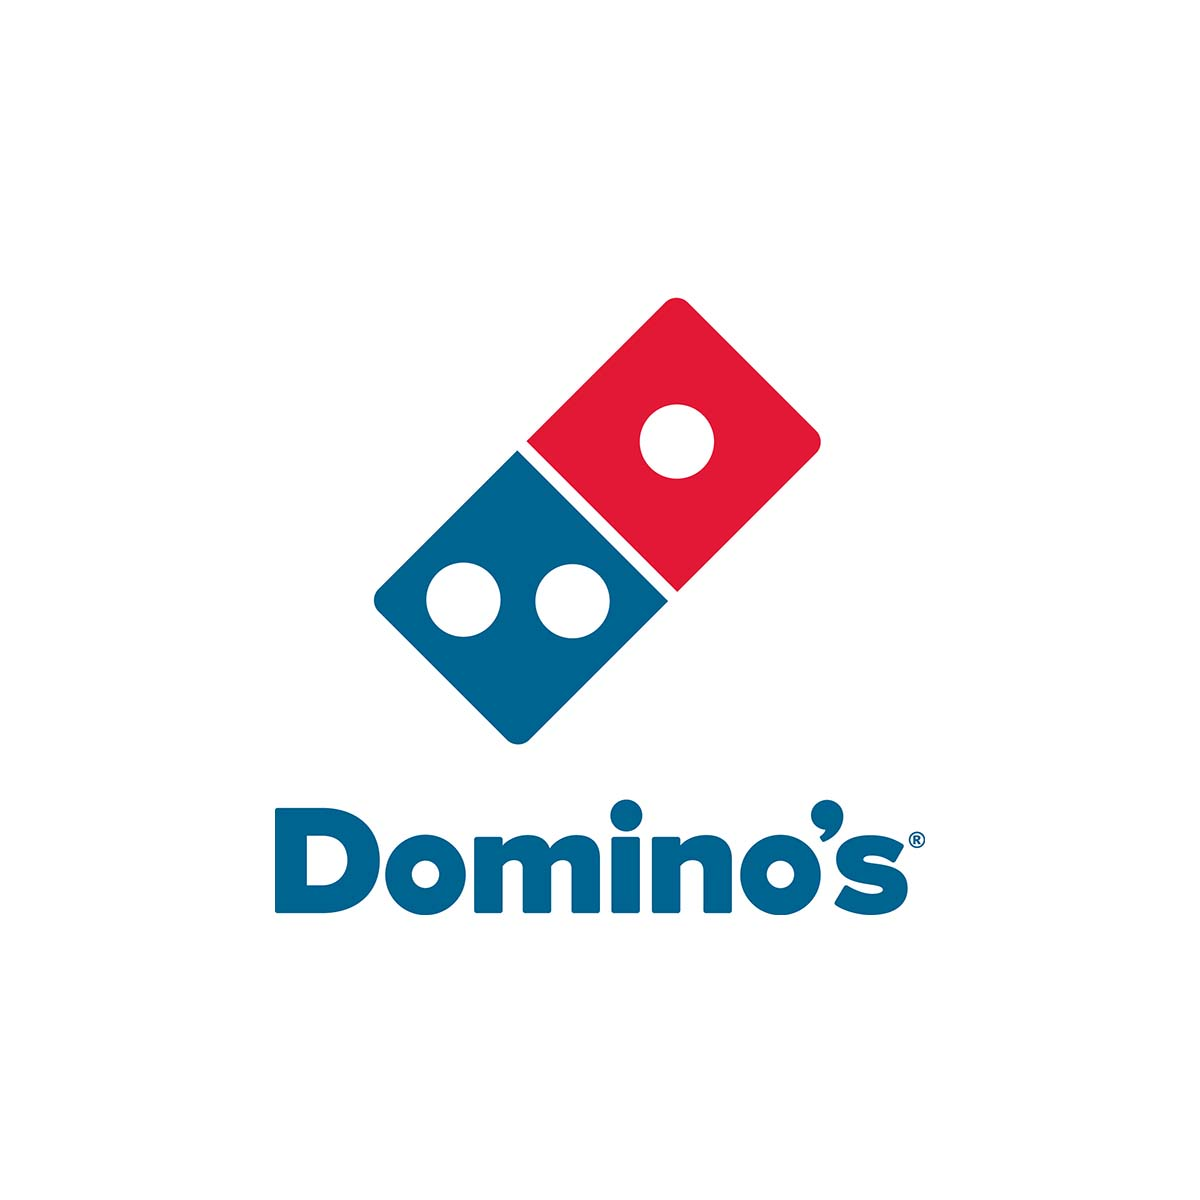 More Than 55% Off For Takeaway/Dine-In Domino's Regular Pizza. Promo Available From 18/8/17 Until 20/8/17